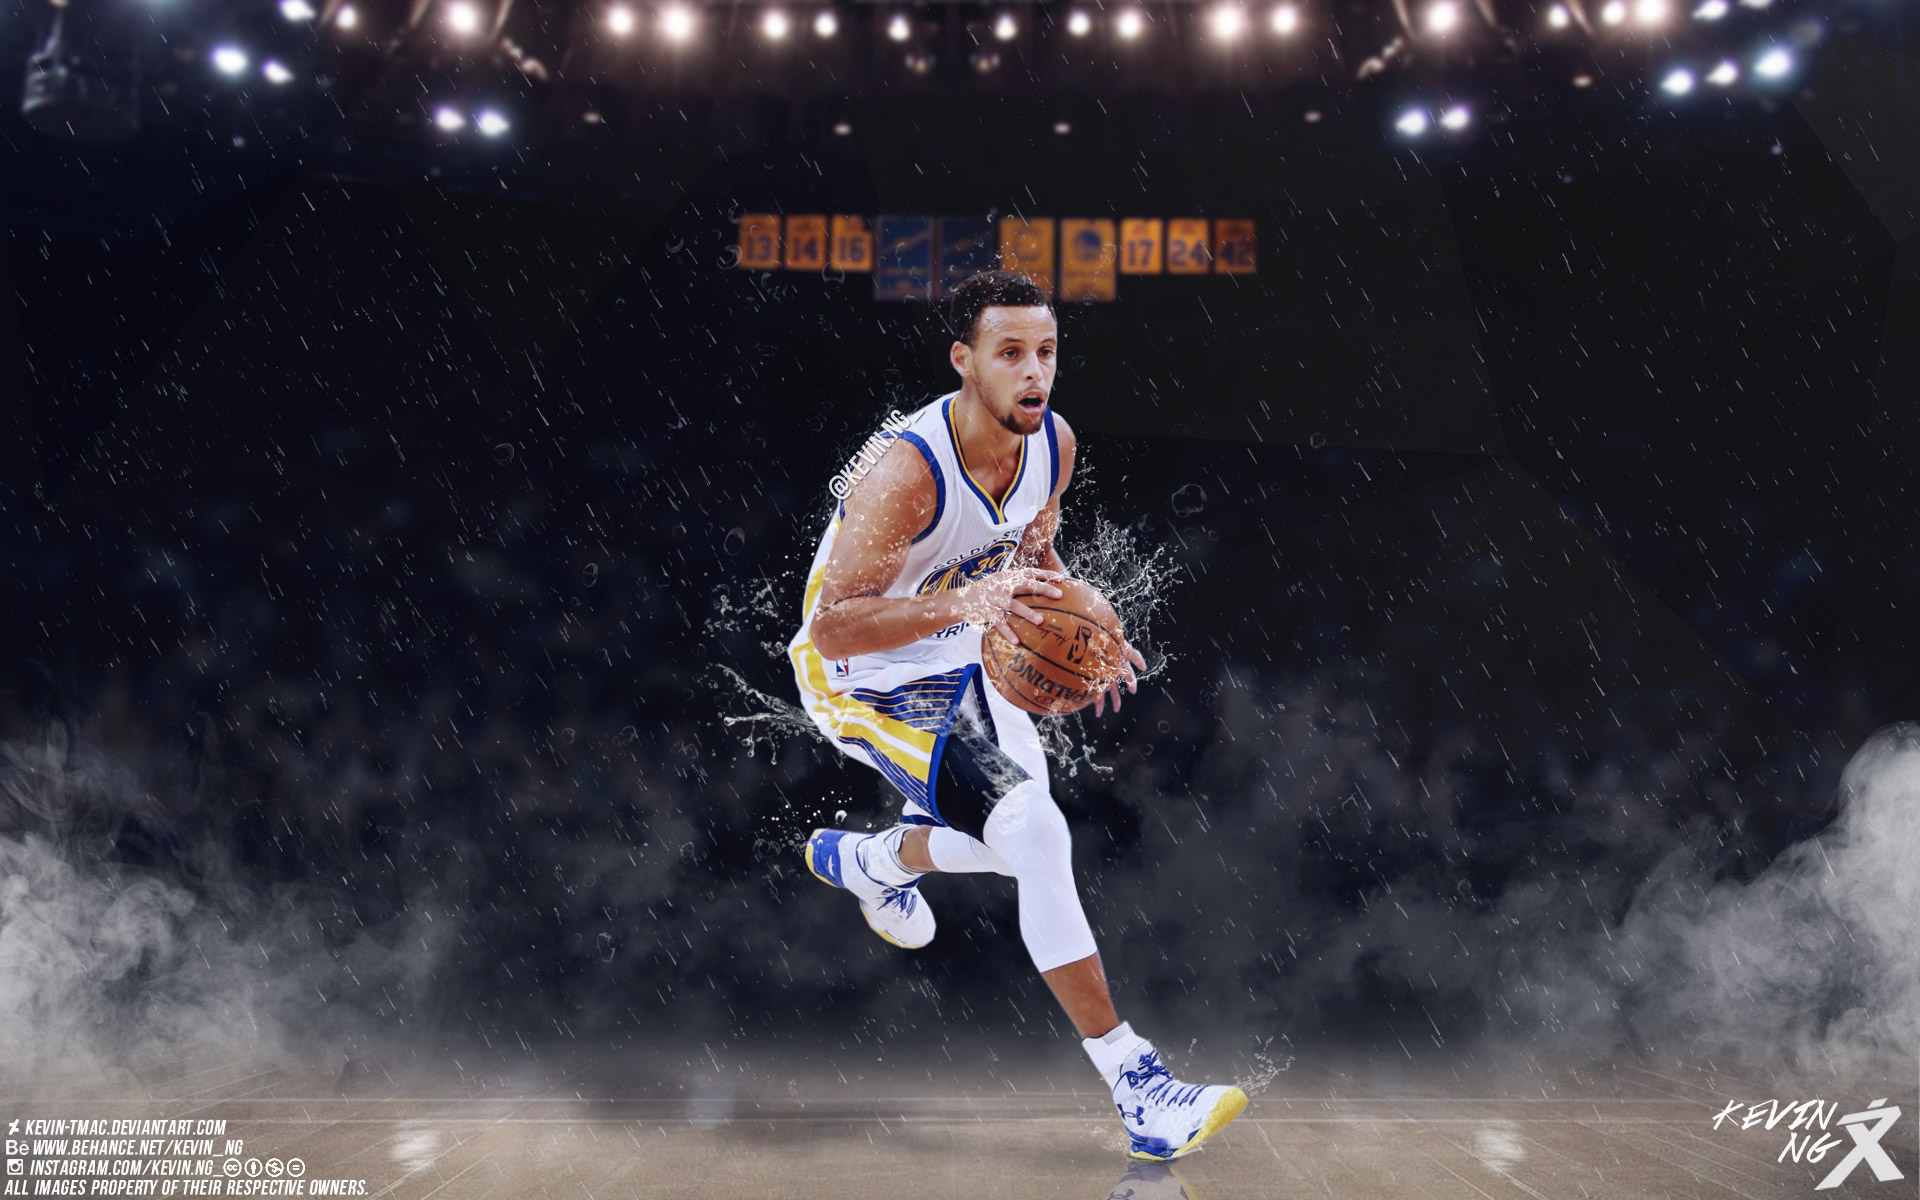 Stephen Curry Wallpaper HD 2016 1920x1200